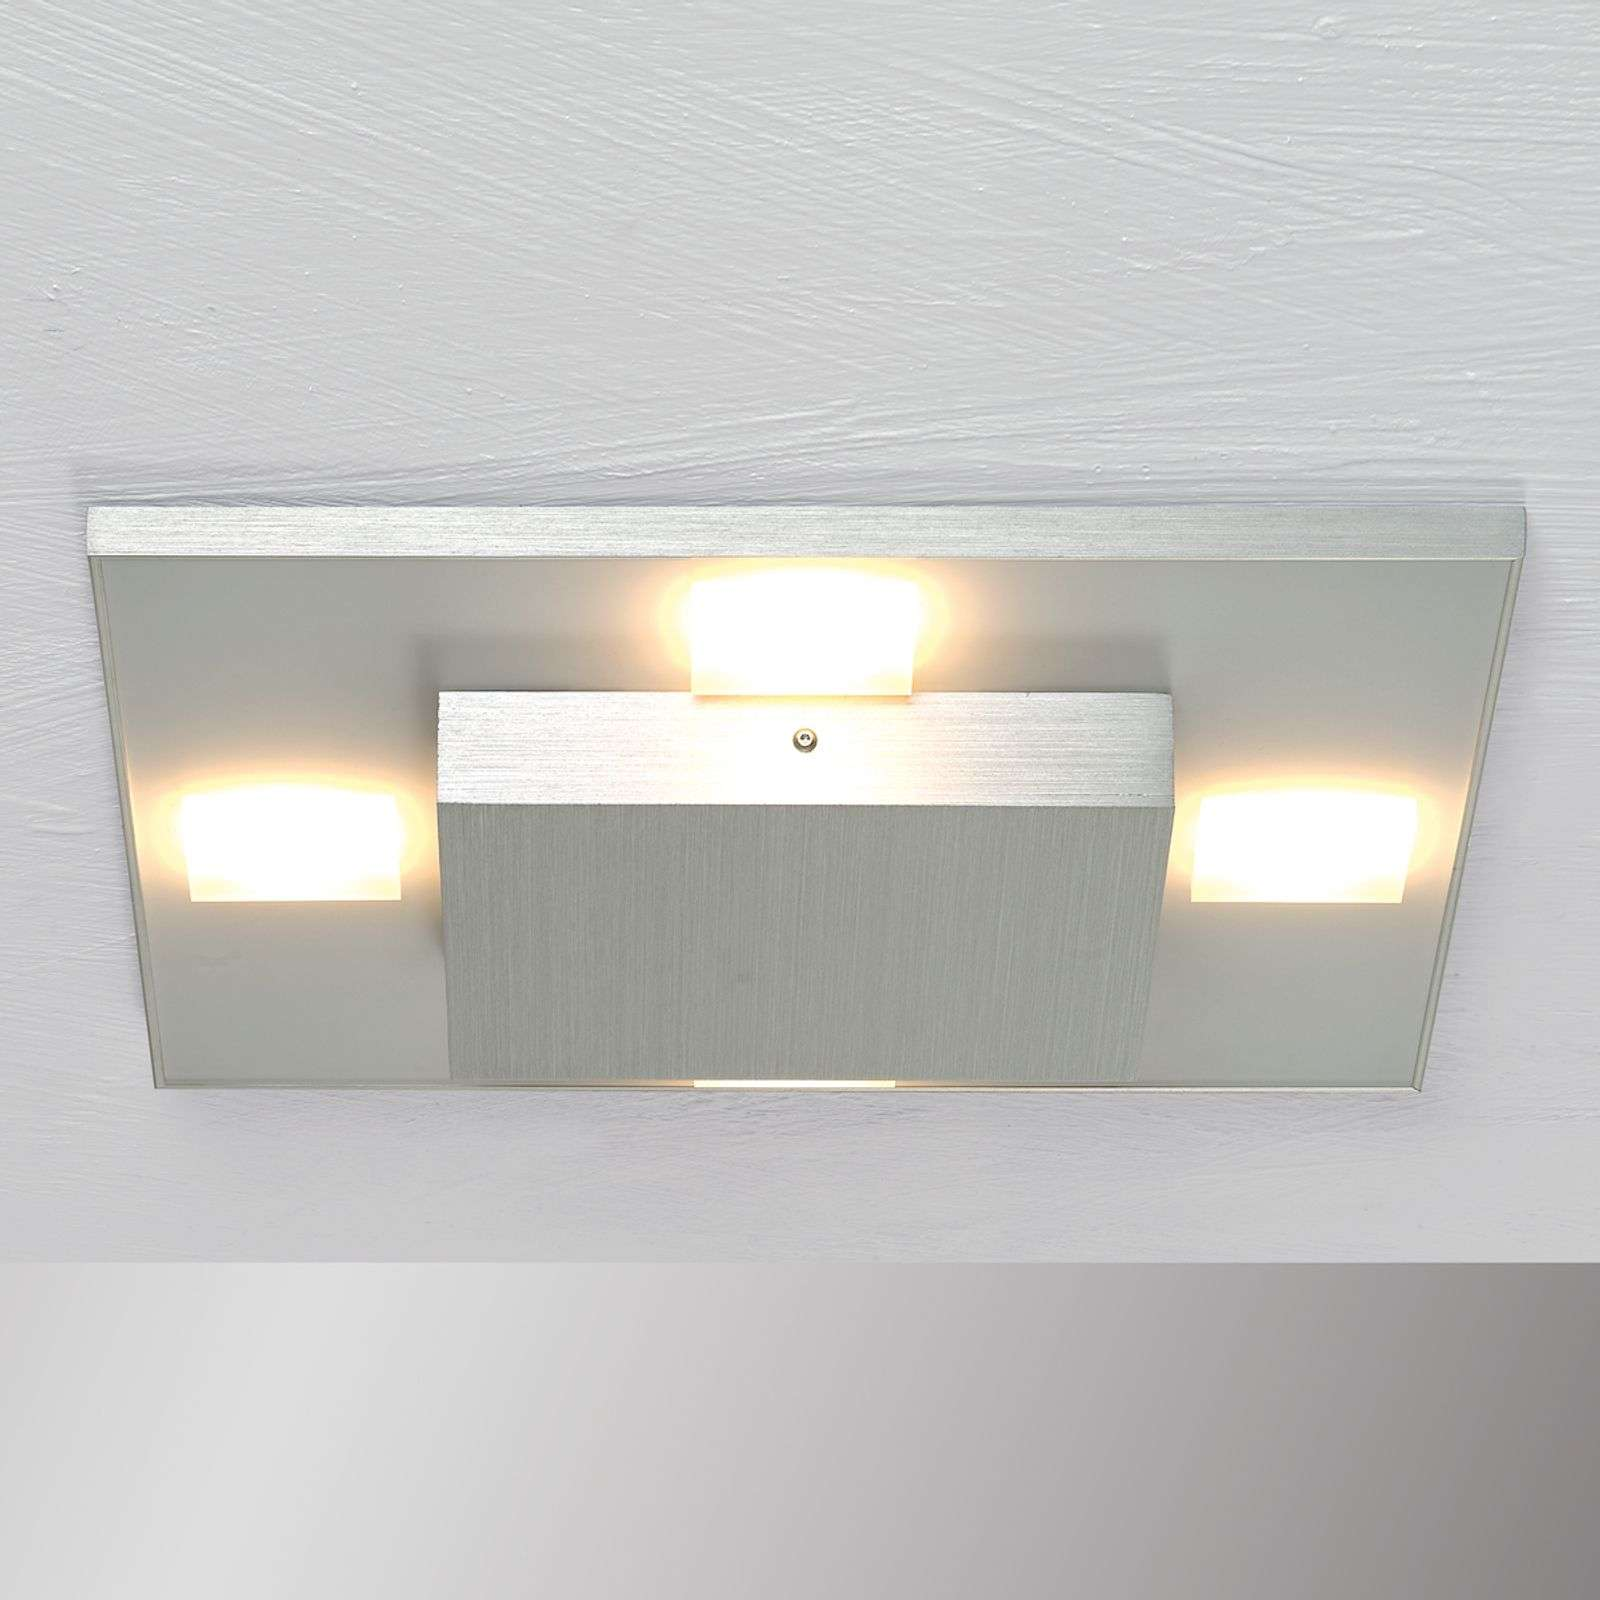 Plafoniera LED quadrata Slight, alluminio